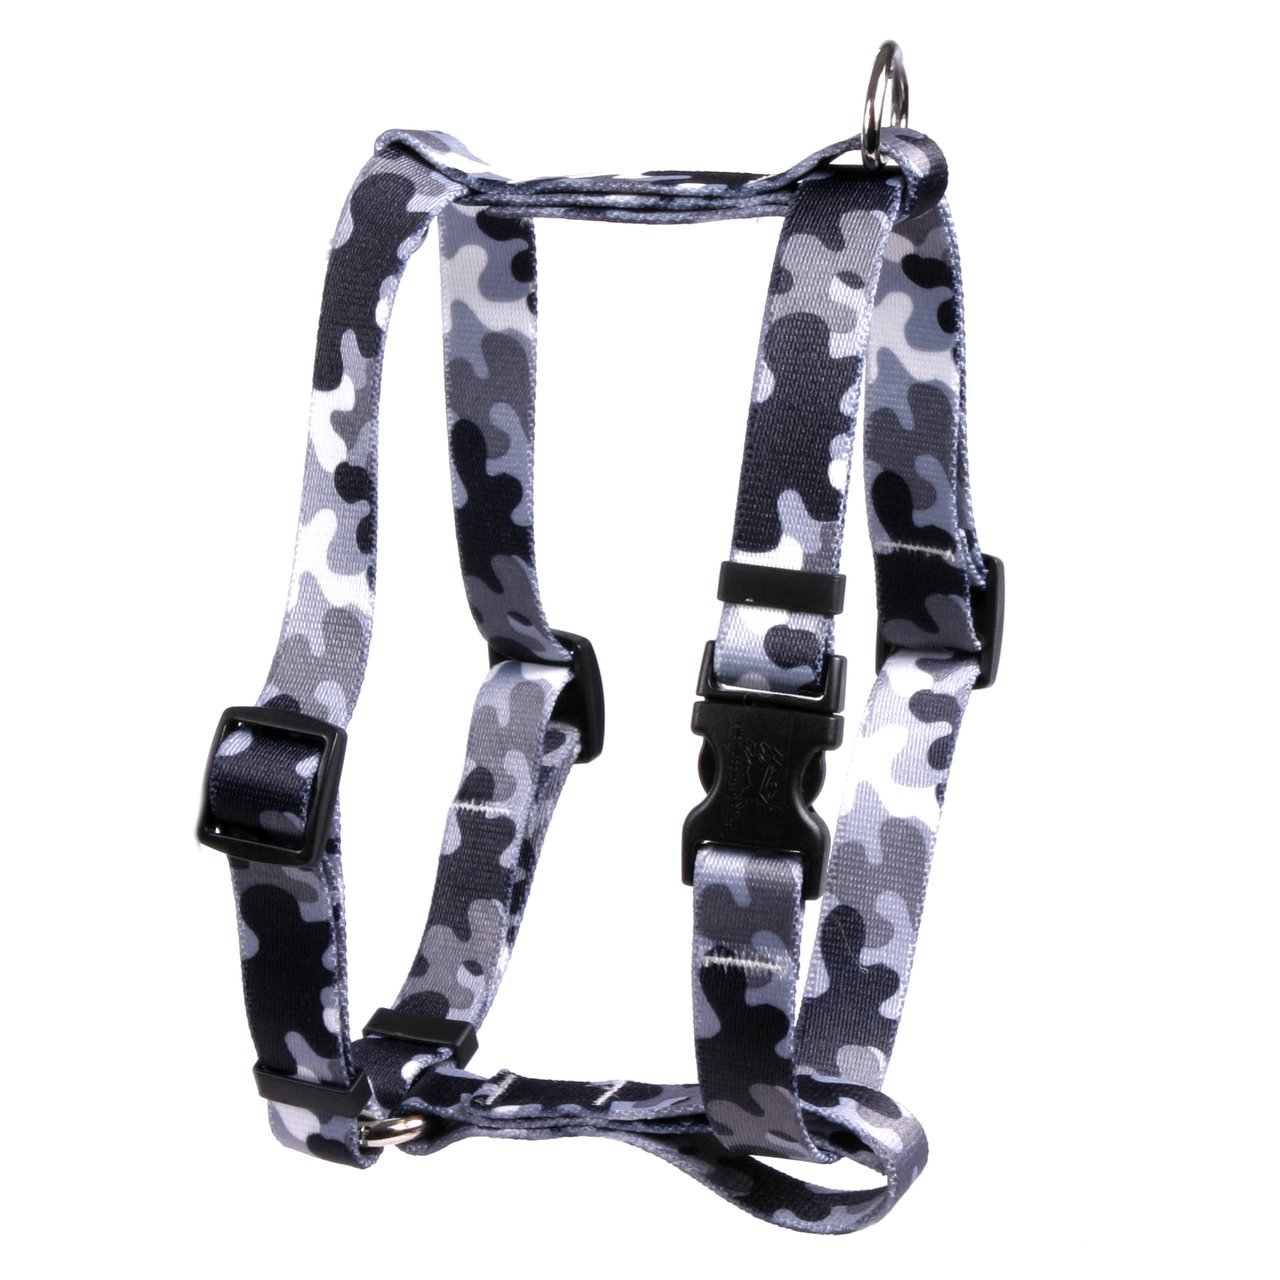 Yellow Dog Design Black and White Camo Roman Style H Dog Harness, X-Large/1'' Wide by Yellow Dog Design